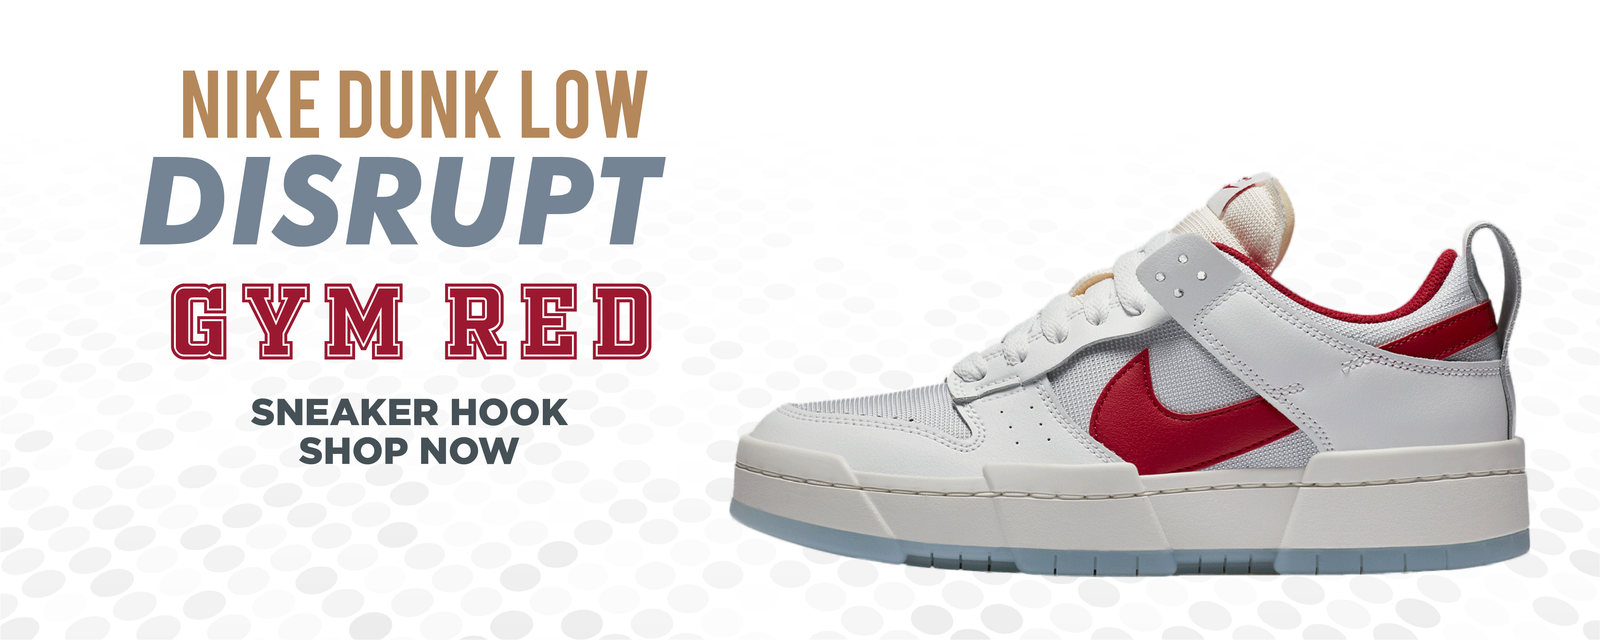 Dunk Low Disrupt Gym Red Clothing to match Sneakers | Clothing to match Nike Dunk Low Disrupt Gym Red Shoes